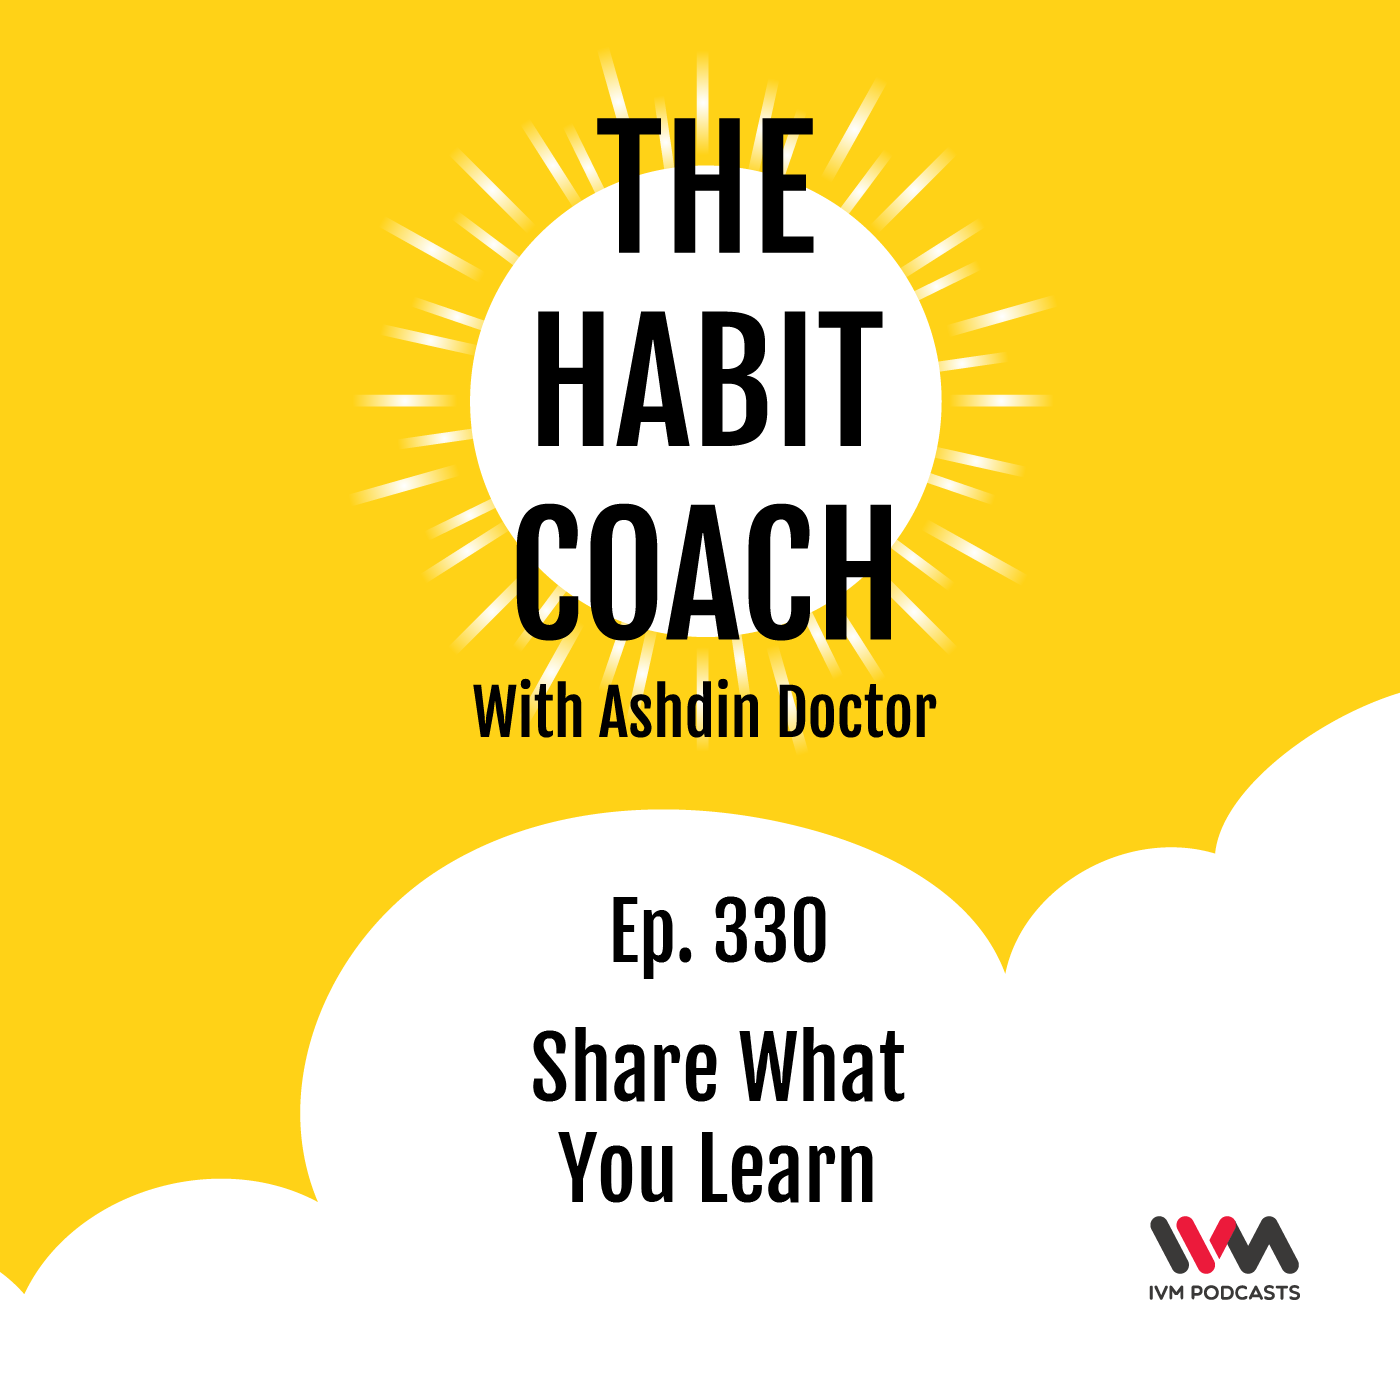 Ep. 330: Share What You Learn